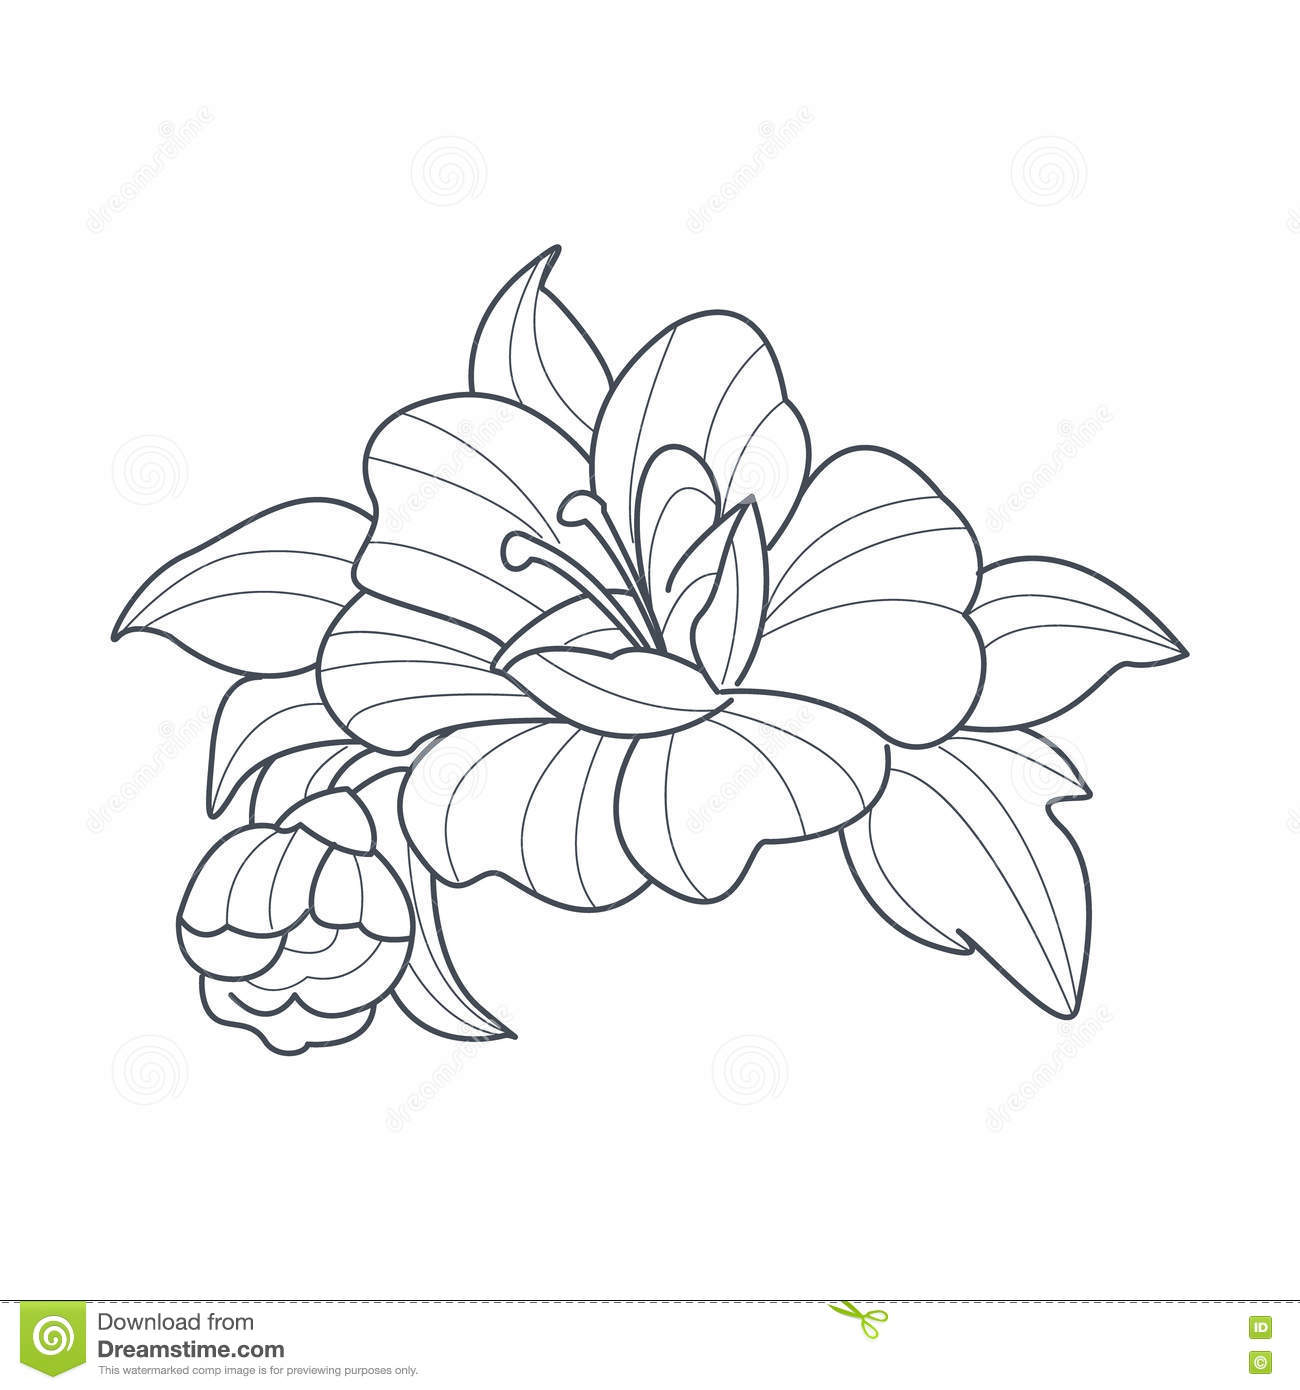 Dog Rose Flower Monochrome Drawing For Coloring Book Stock Vector